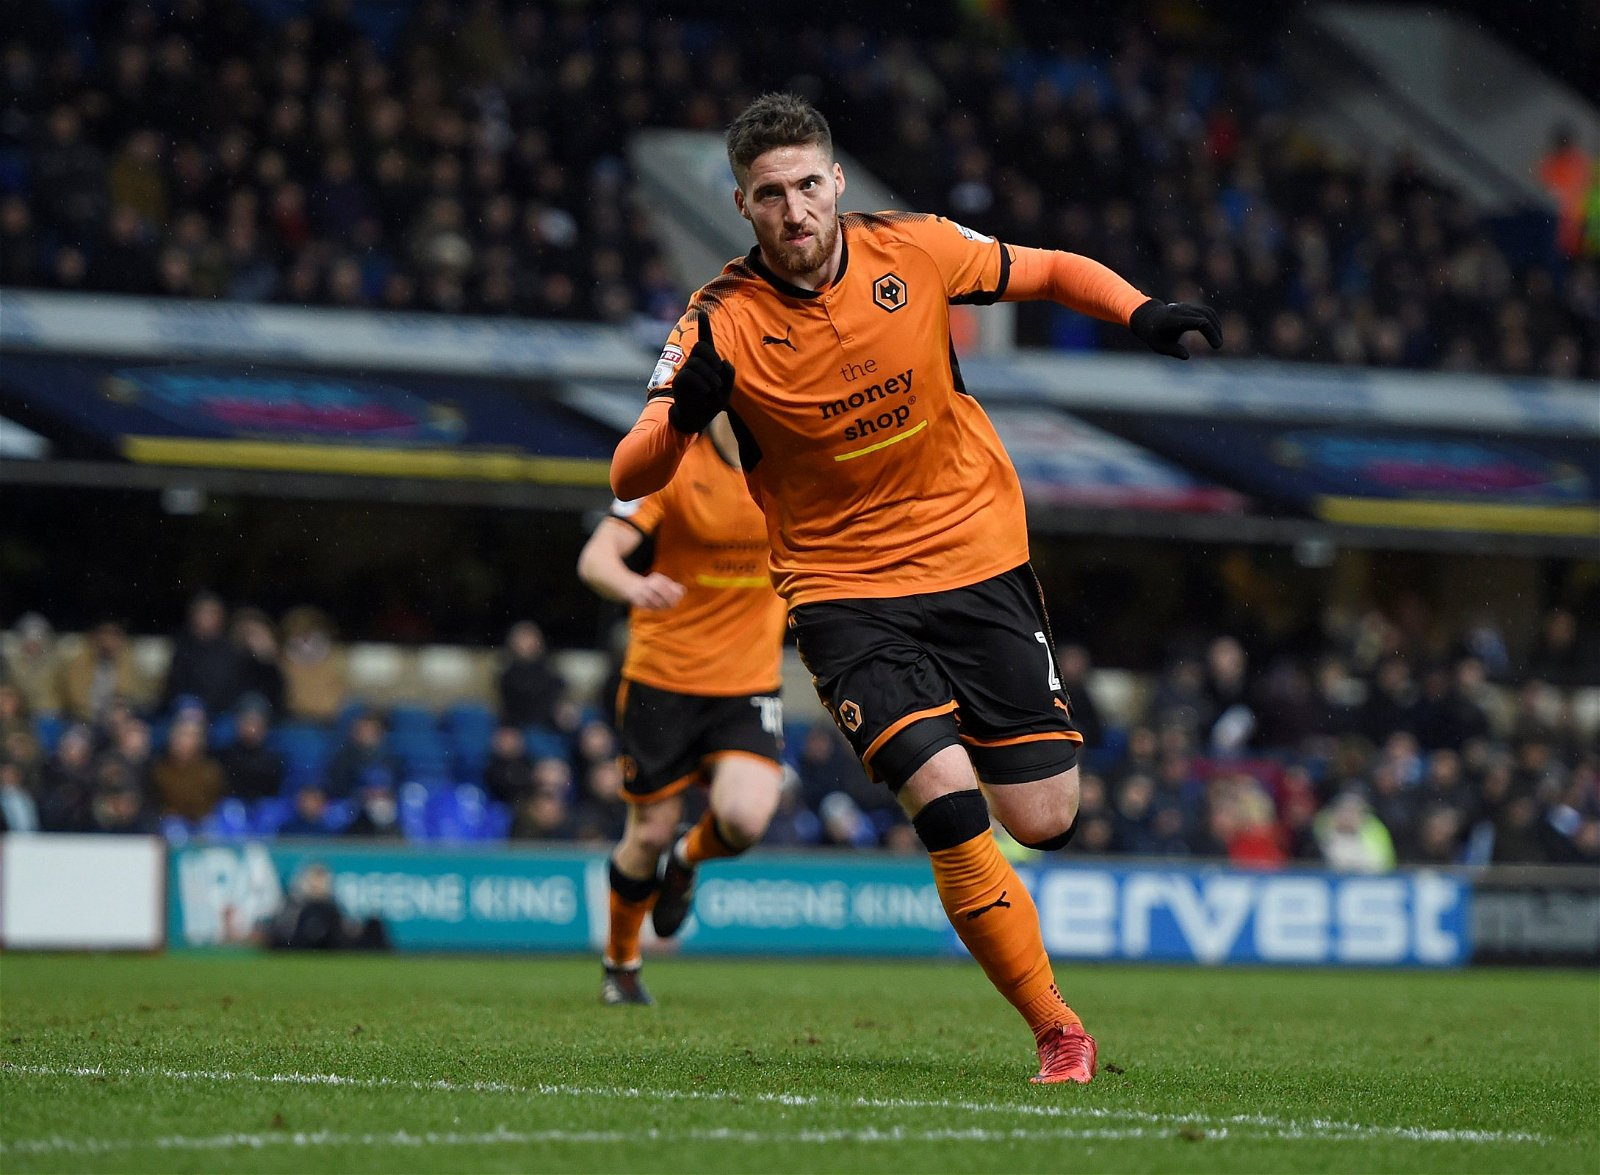 Wolves' Matt Doherty celebrates scoring against Ipswich